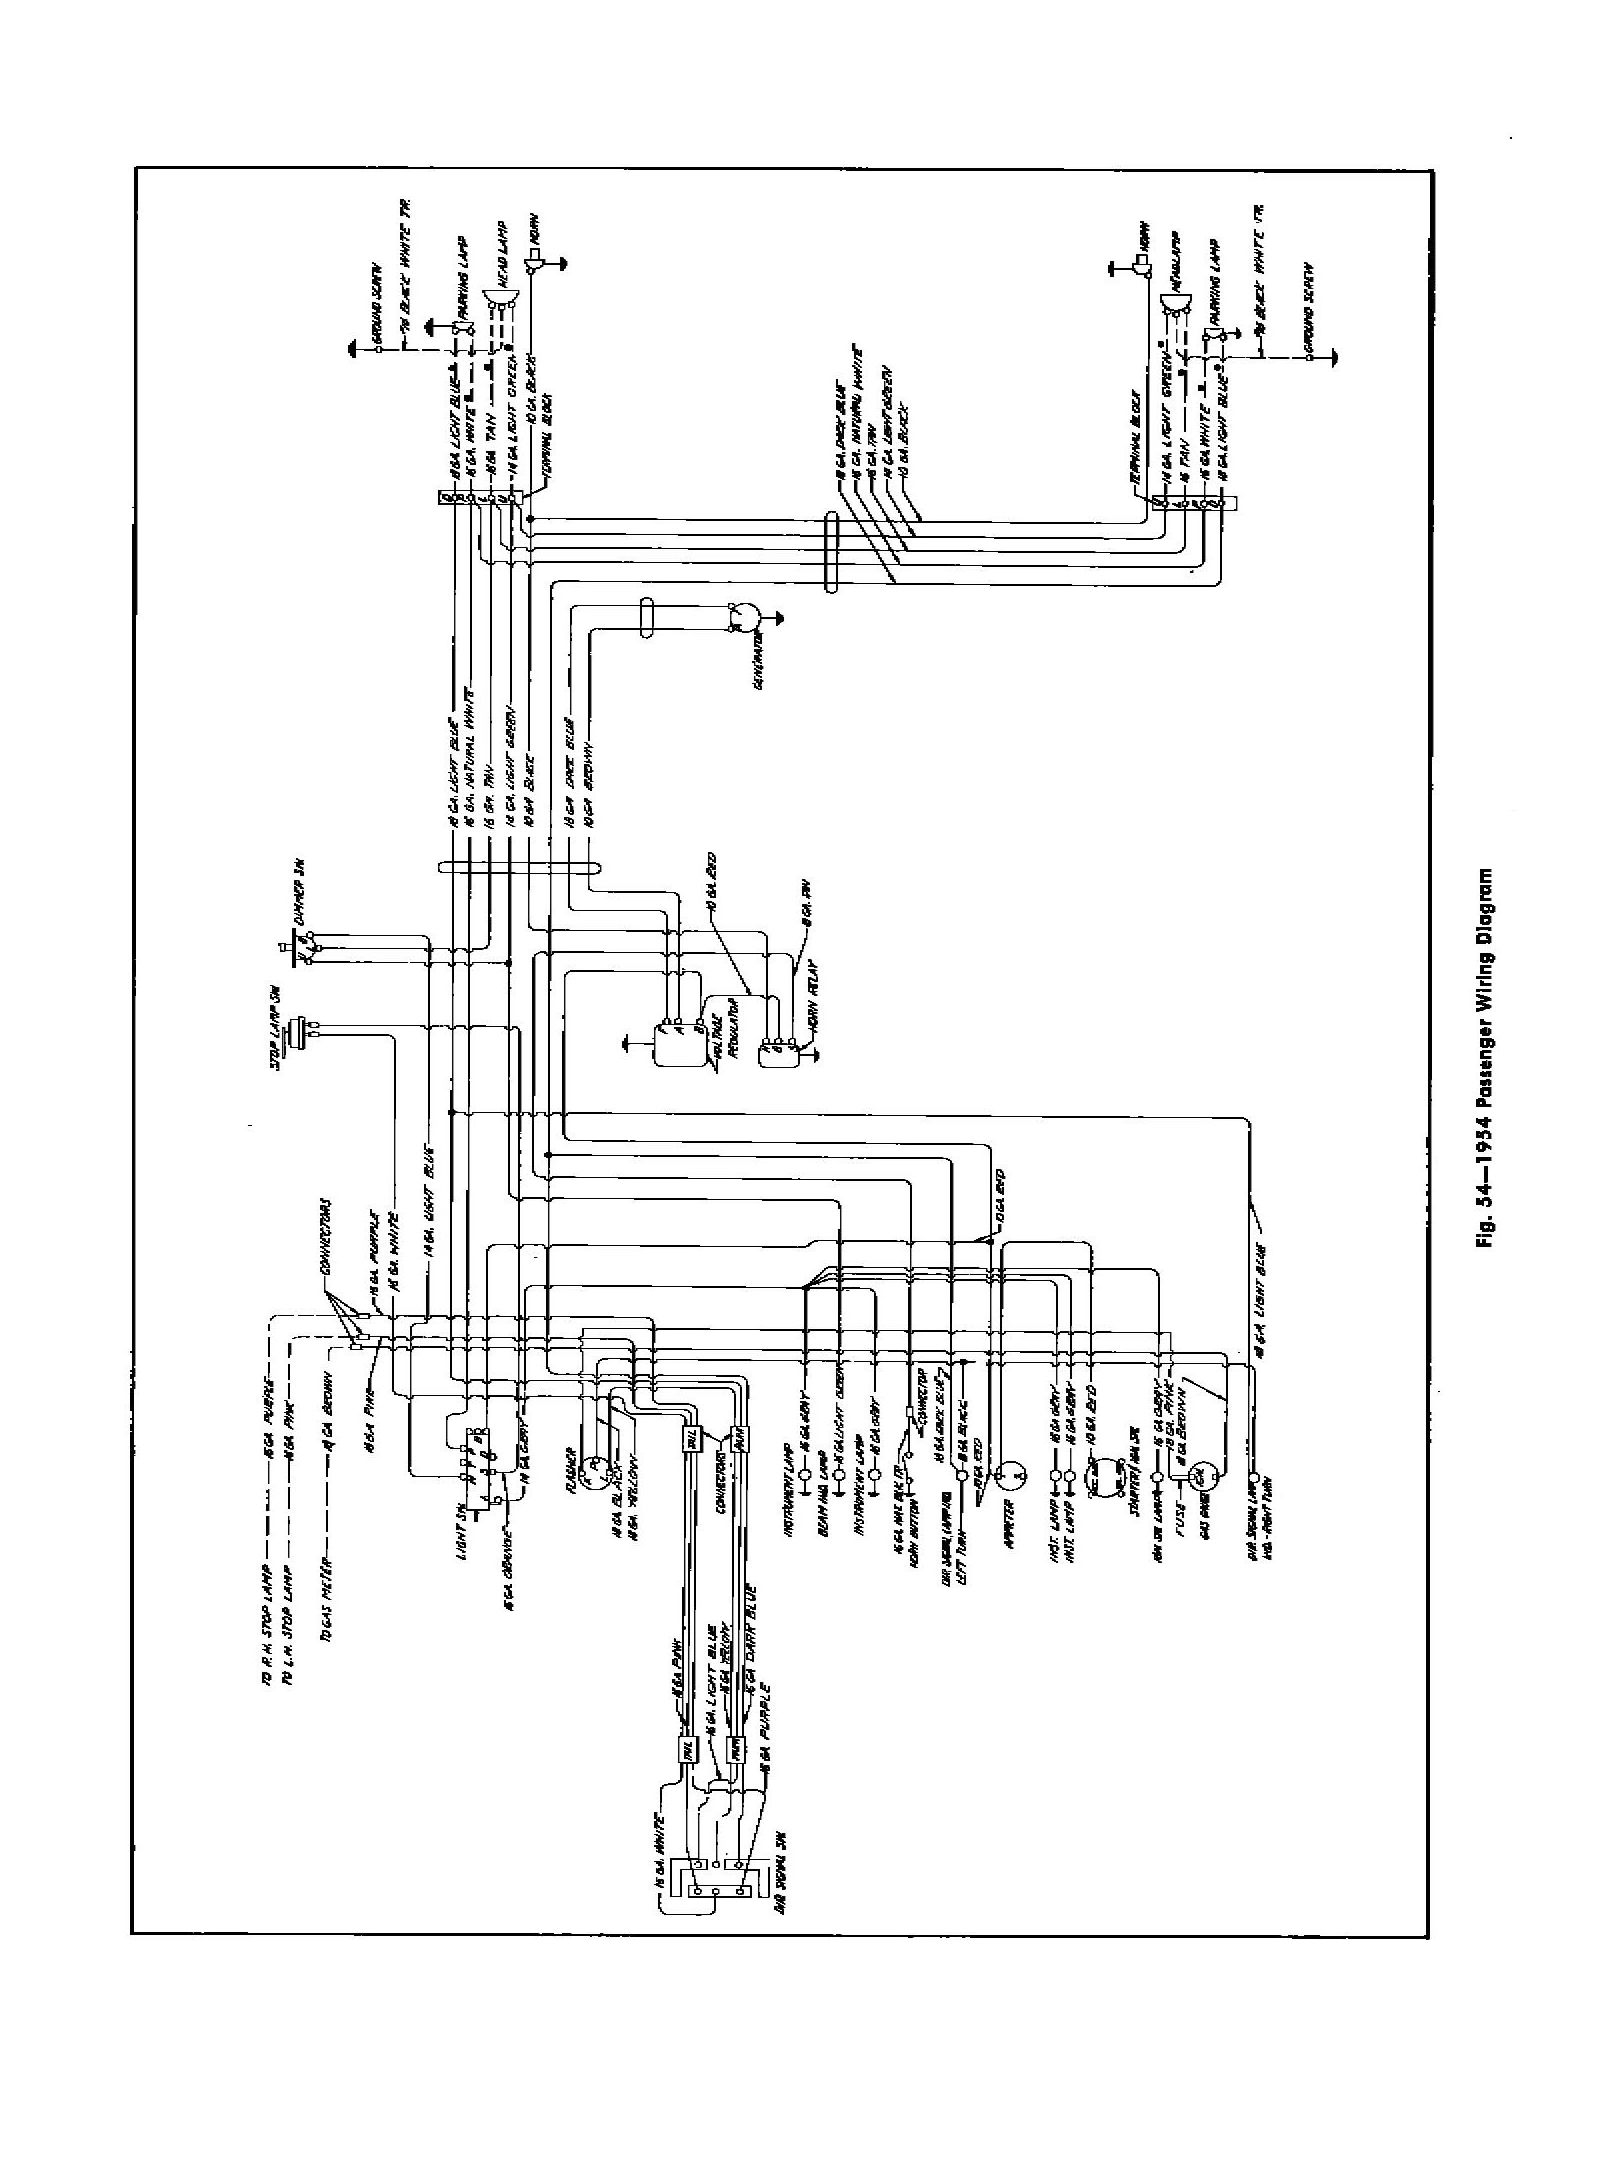 1949 chevy 3100 wiring diagram wire center u2022 rh 45 32 214 188